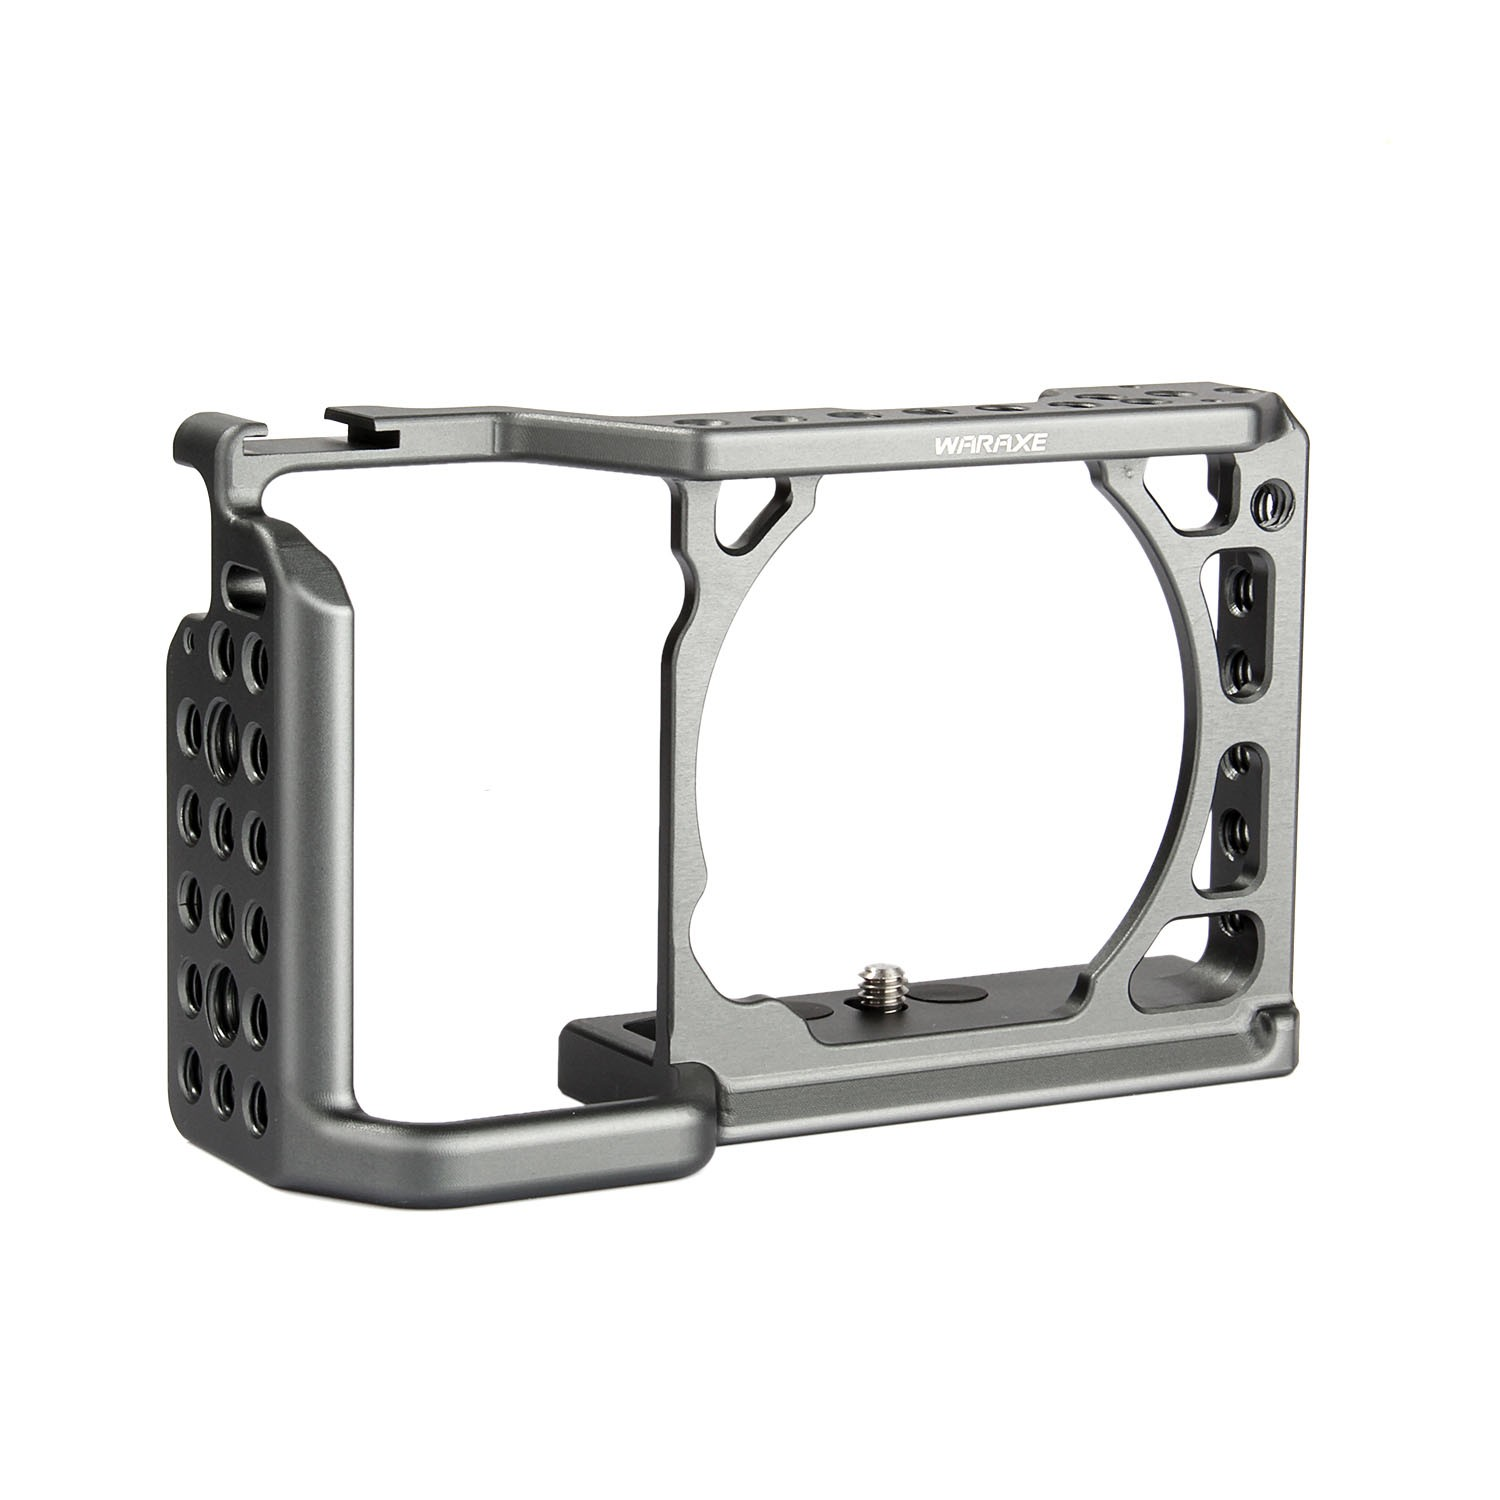 WARAXE A6 Camera Cage for Sony ILCE-6000/ILCE-6300/ILCE-A6500 with 1/4 and 3/8 Threaded Holes Cold Shoe Base sony a6500